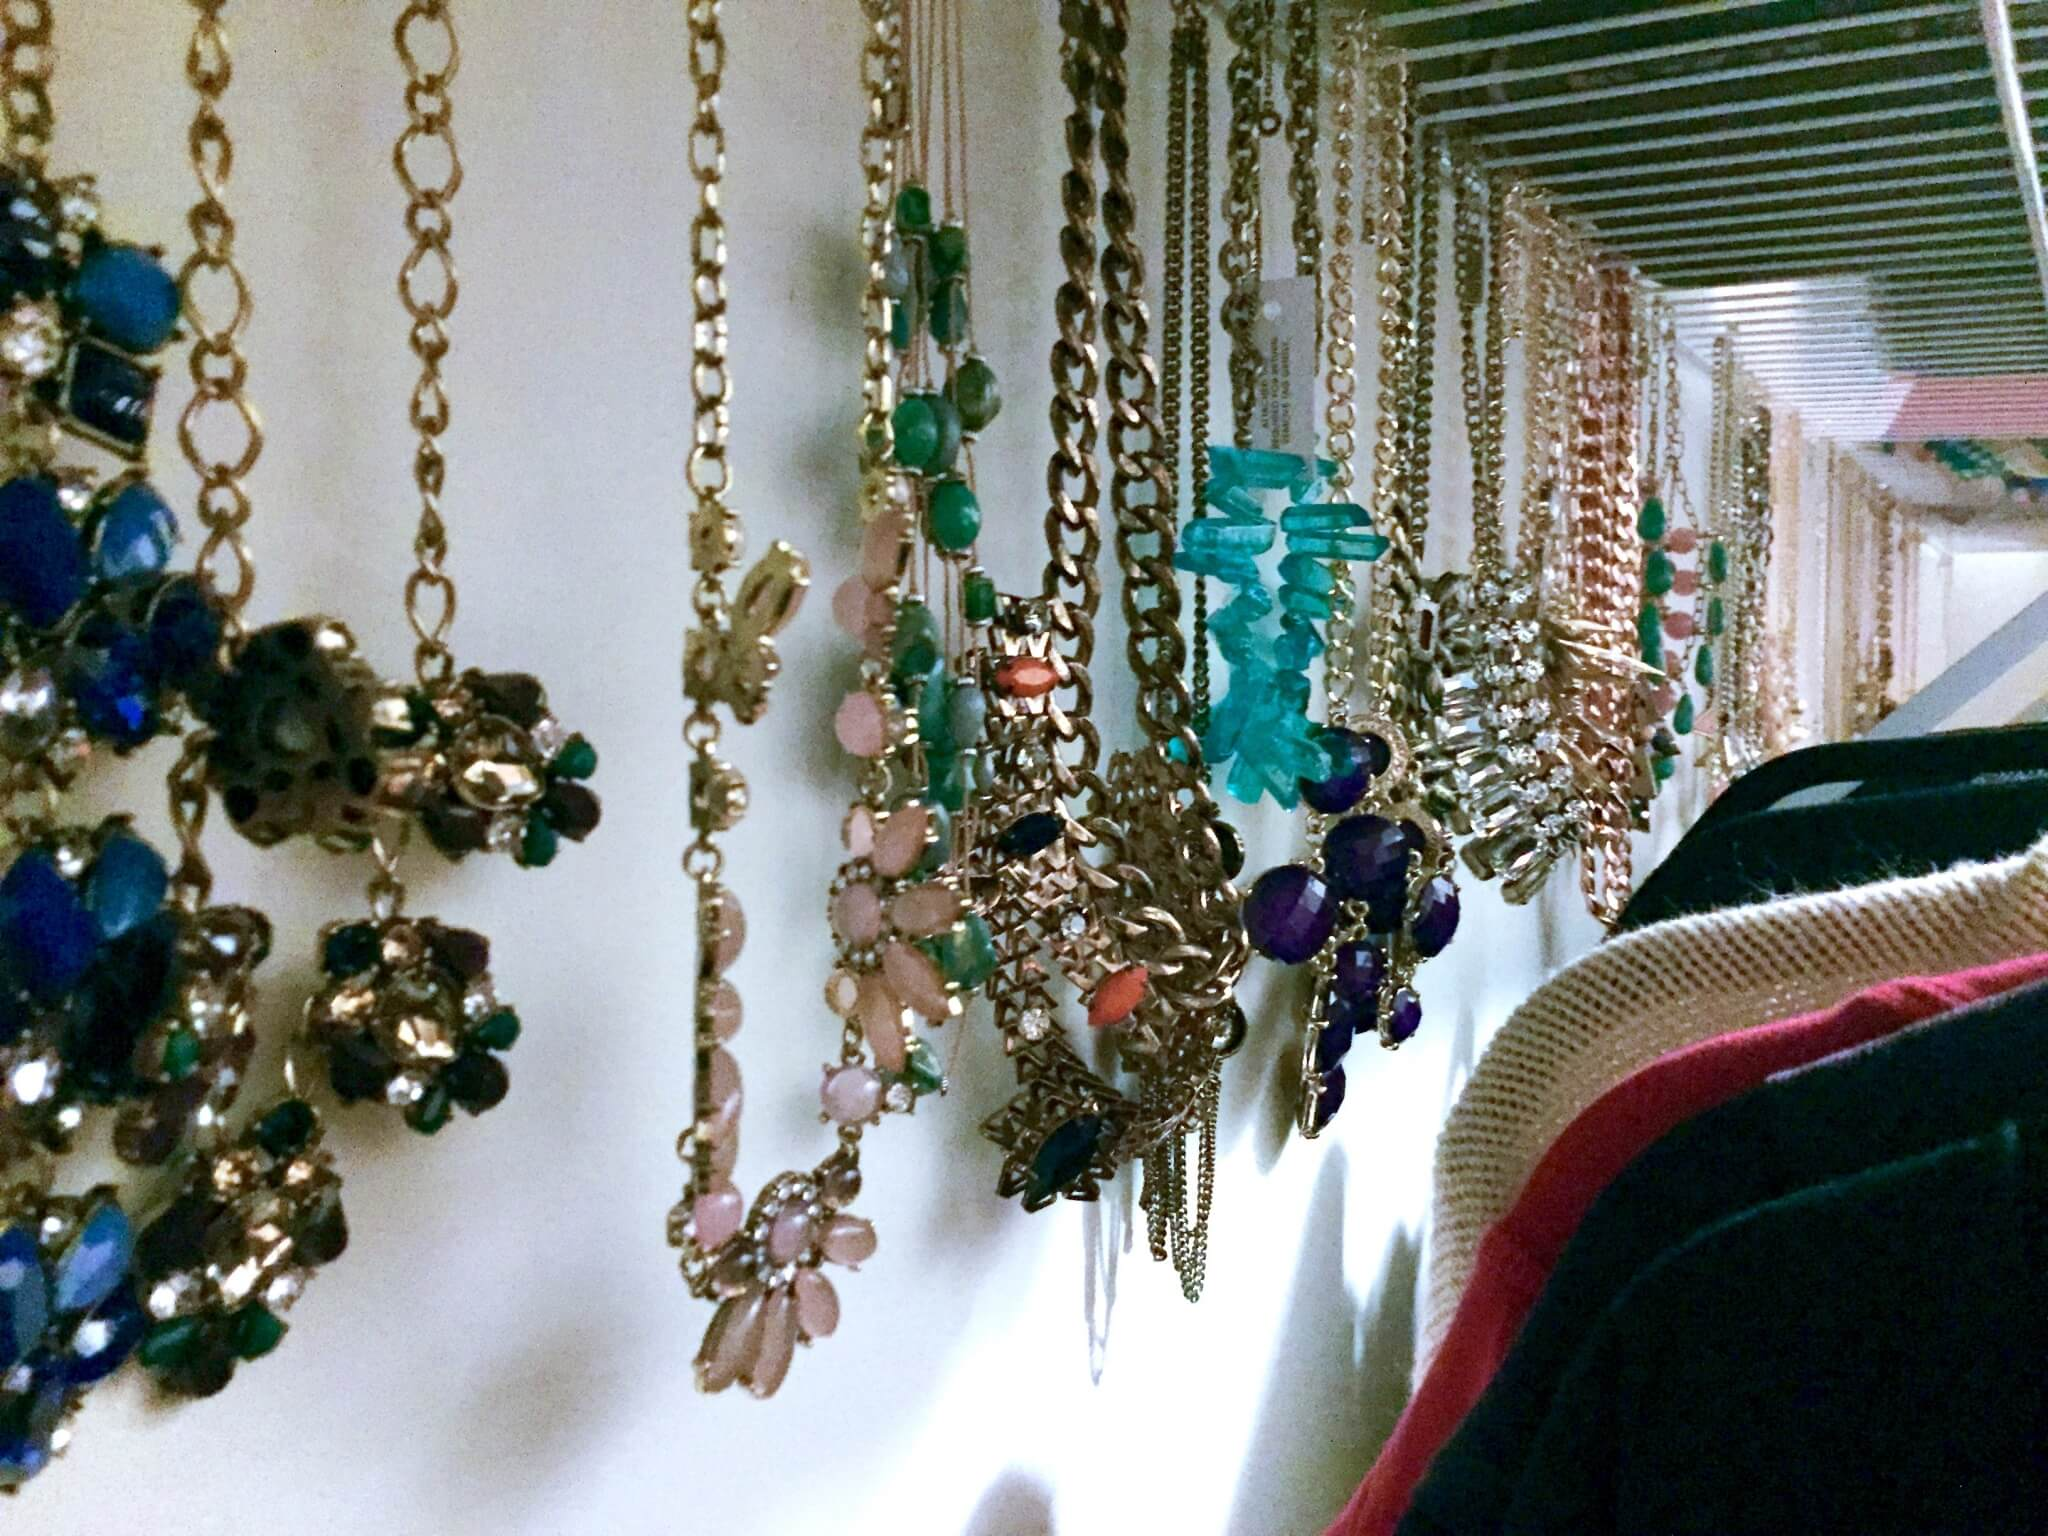 Necklace Organizing Idea!